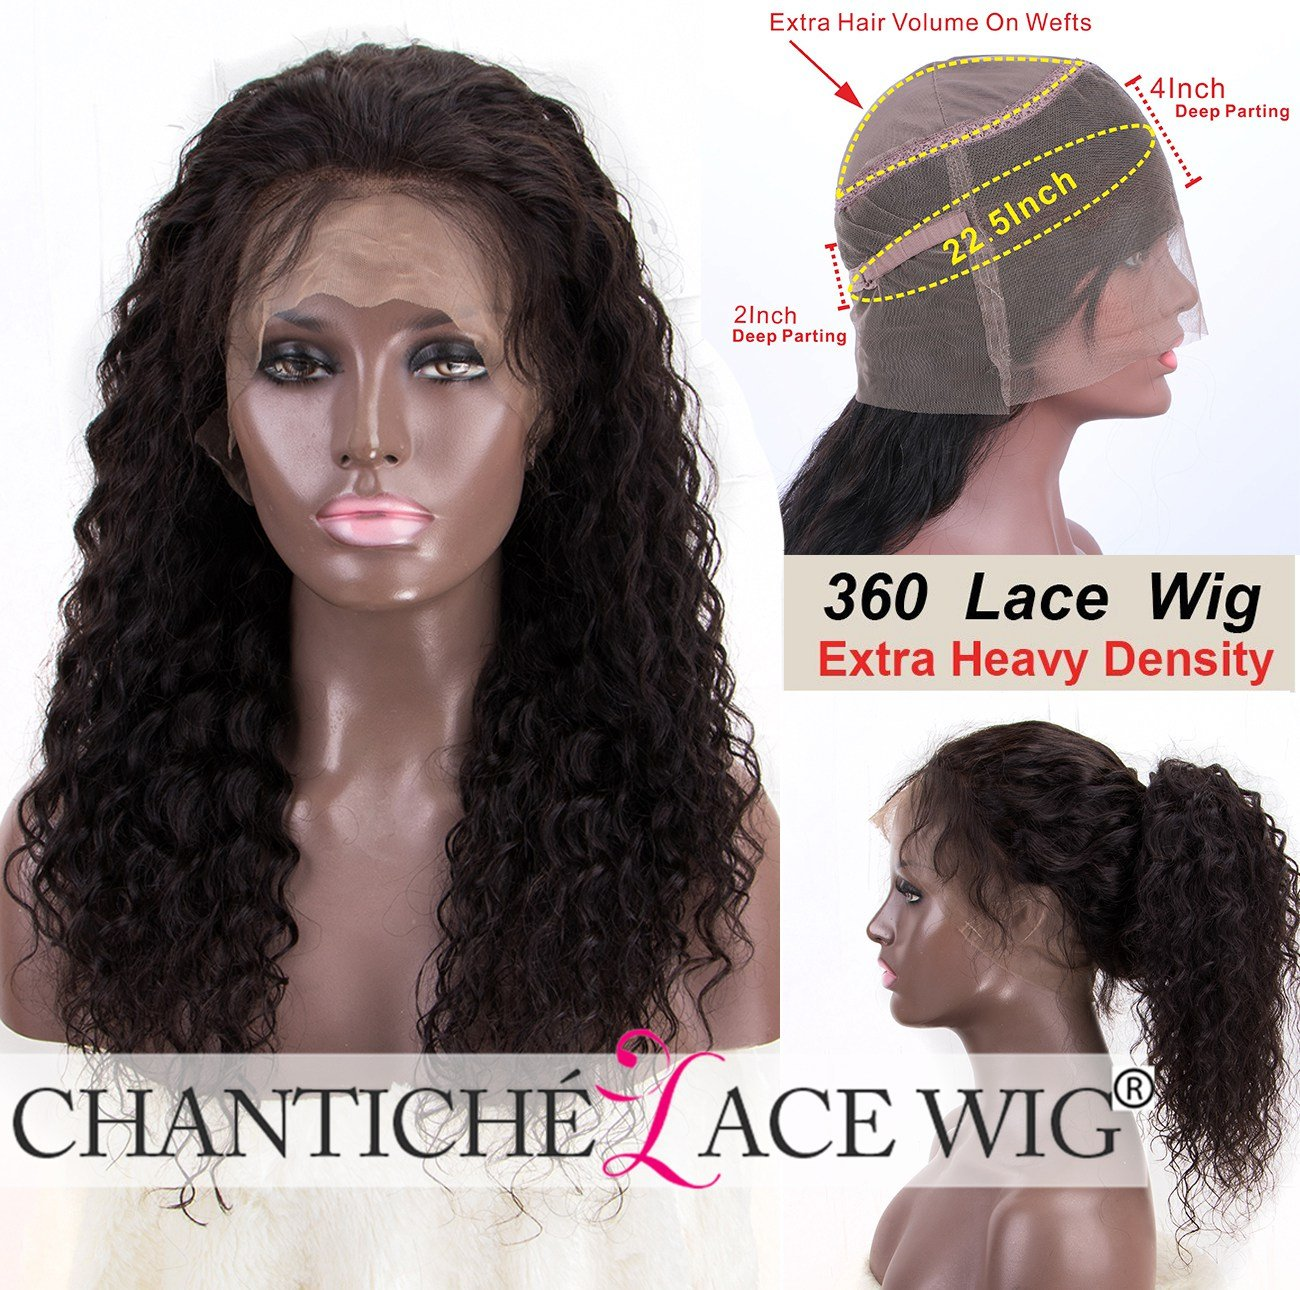 Chantiche Soft Curly 360 Lace Wig, Best Brazilian Virgin Human Hair Customized 360 Full Lace Frontal Wigs for Ladies with 150% High Density 16inches Natural Color